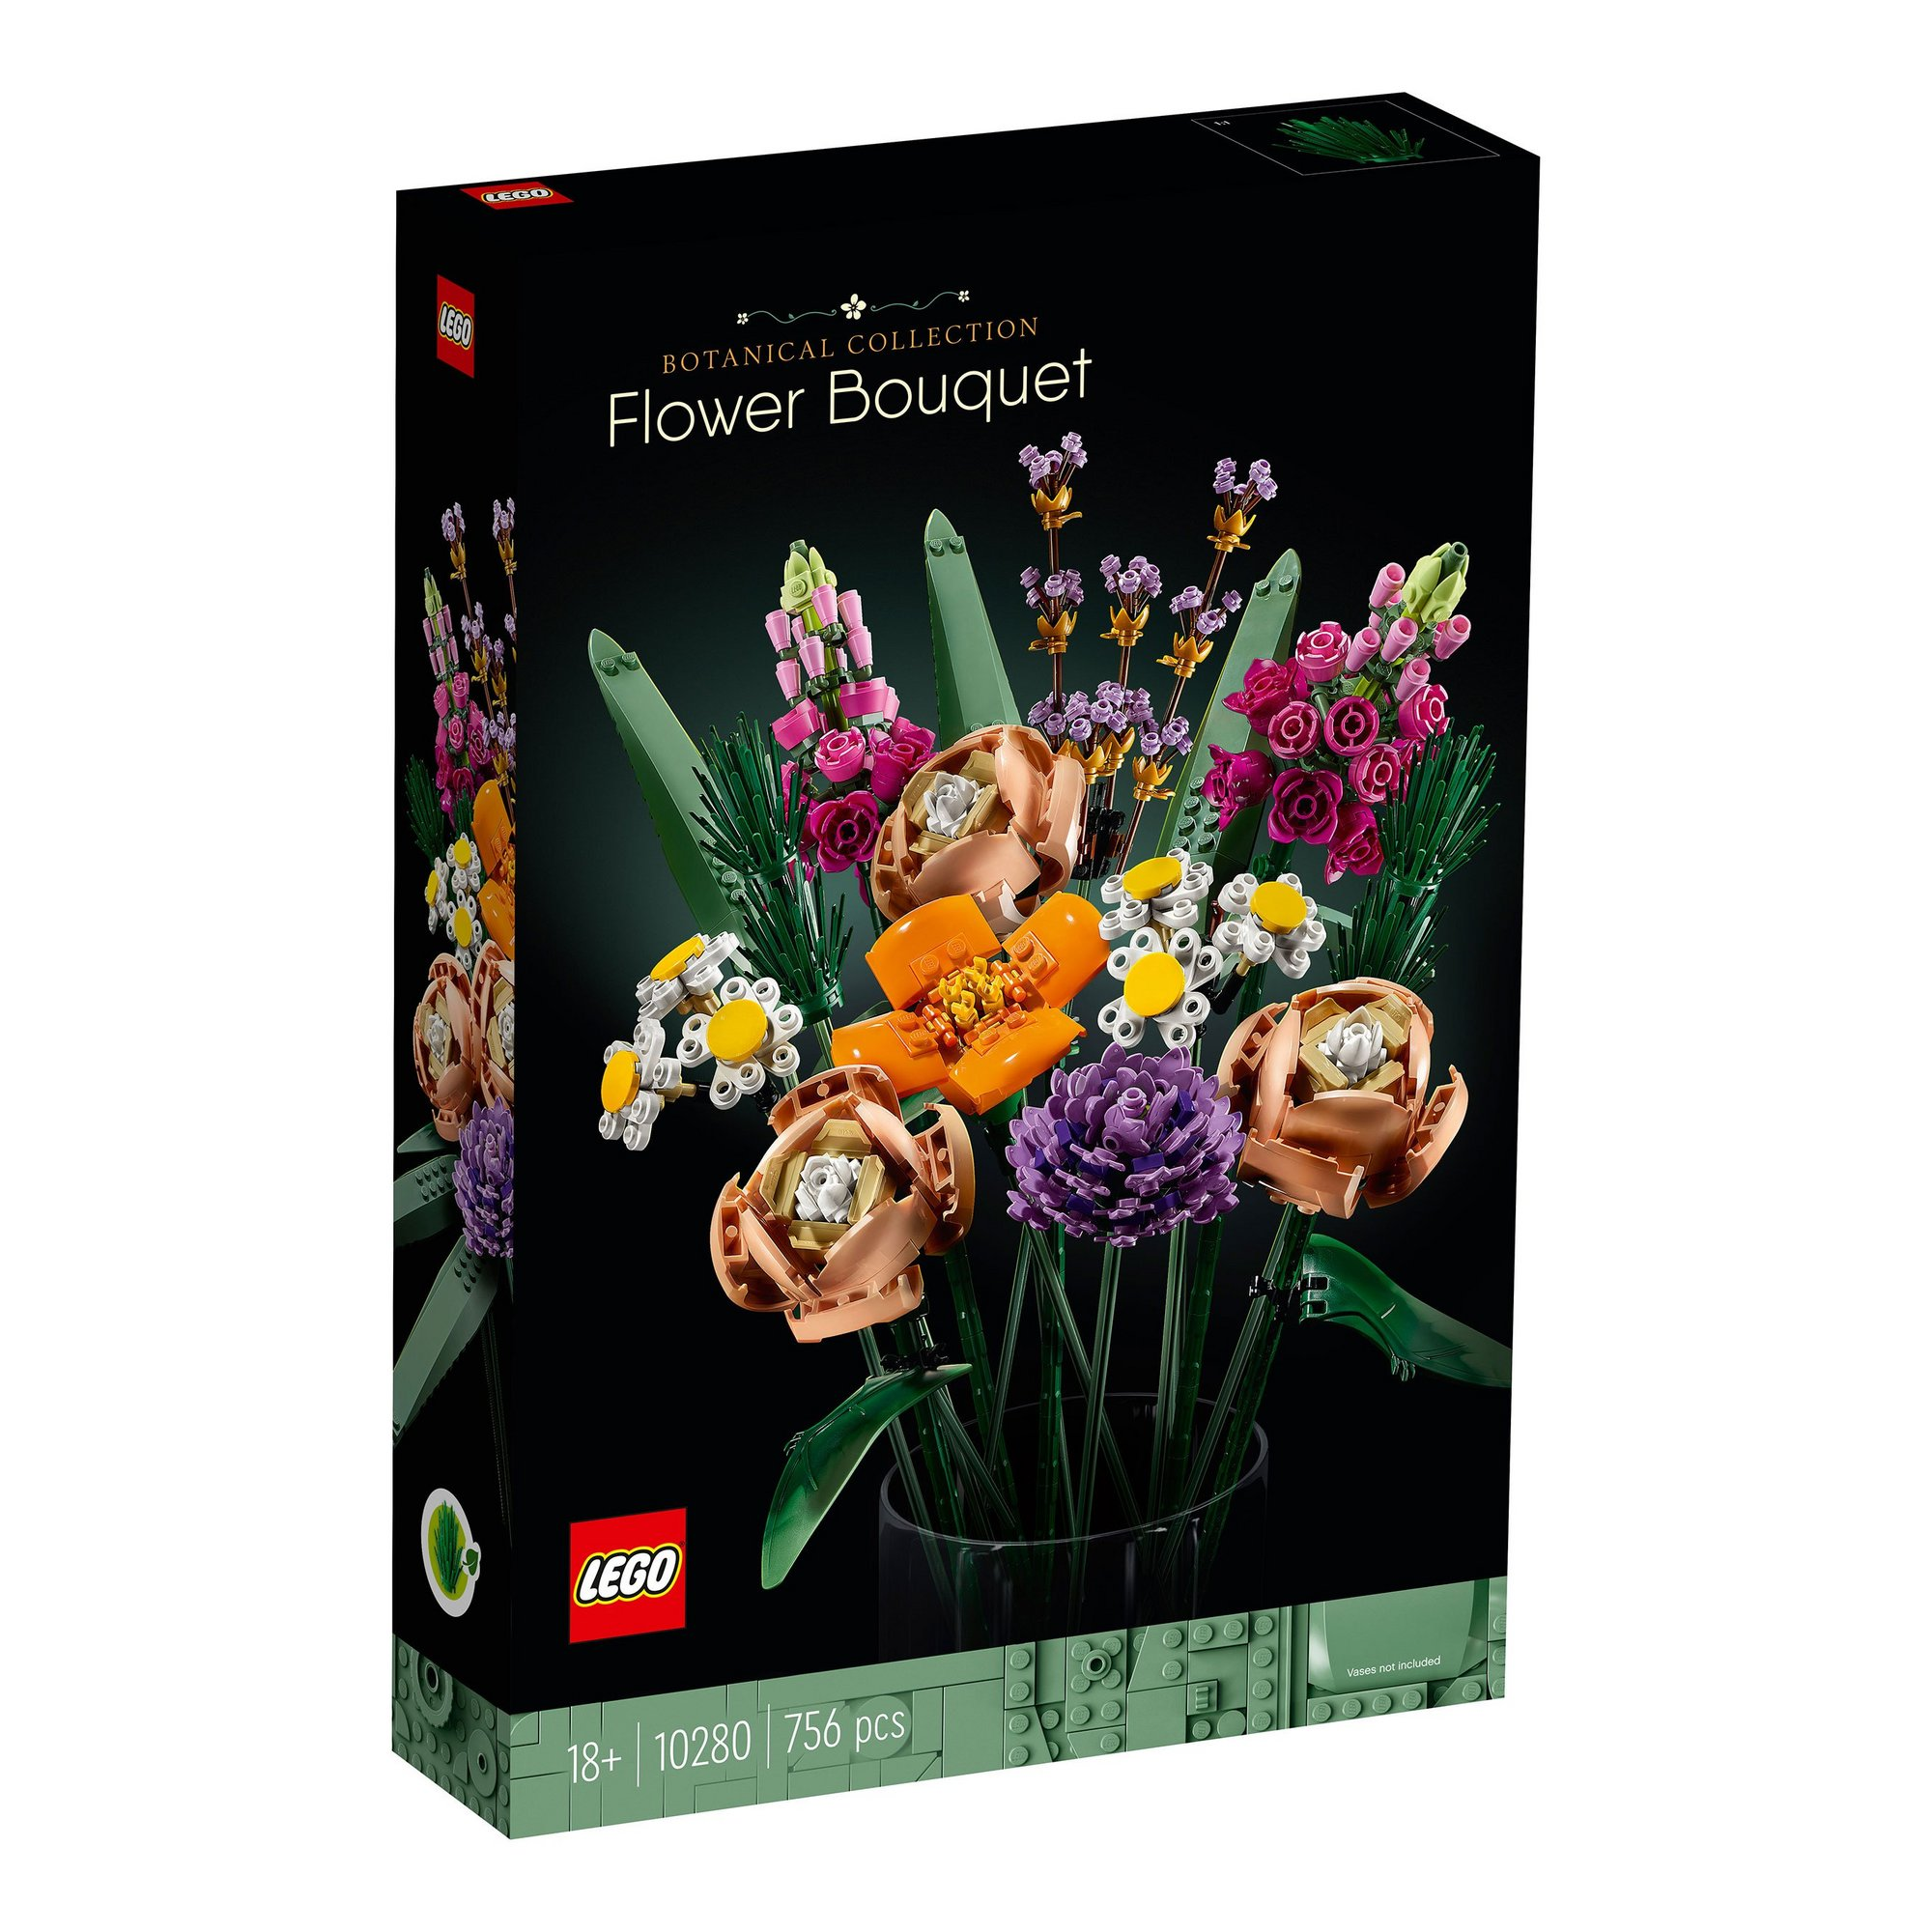 Image of LEGO Creator Expert Flower Bouquet